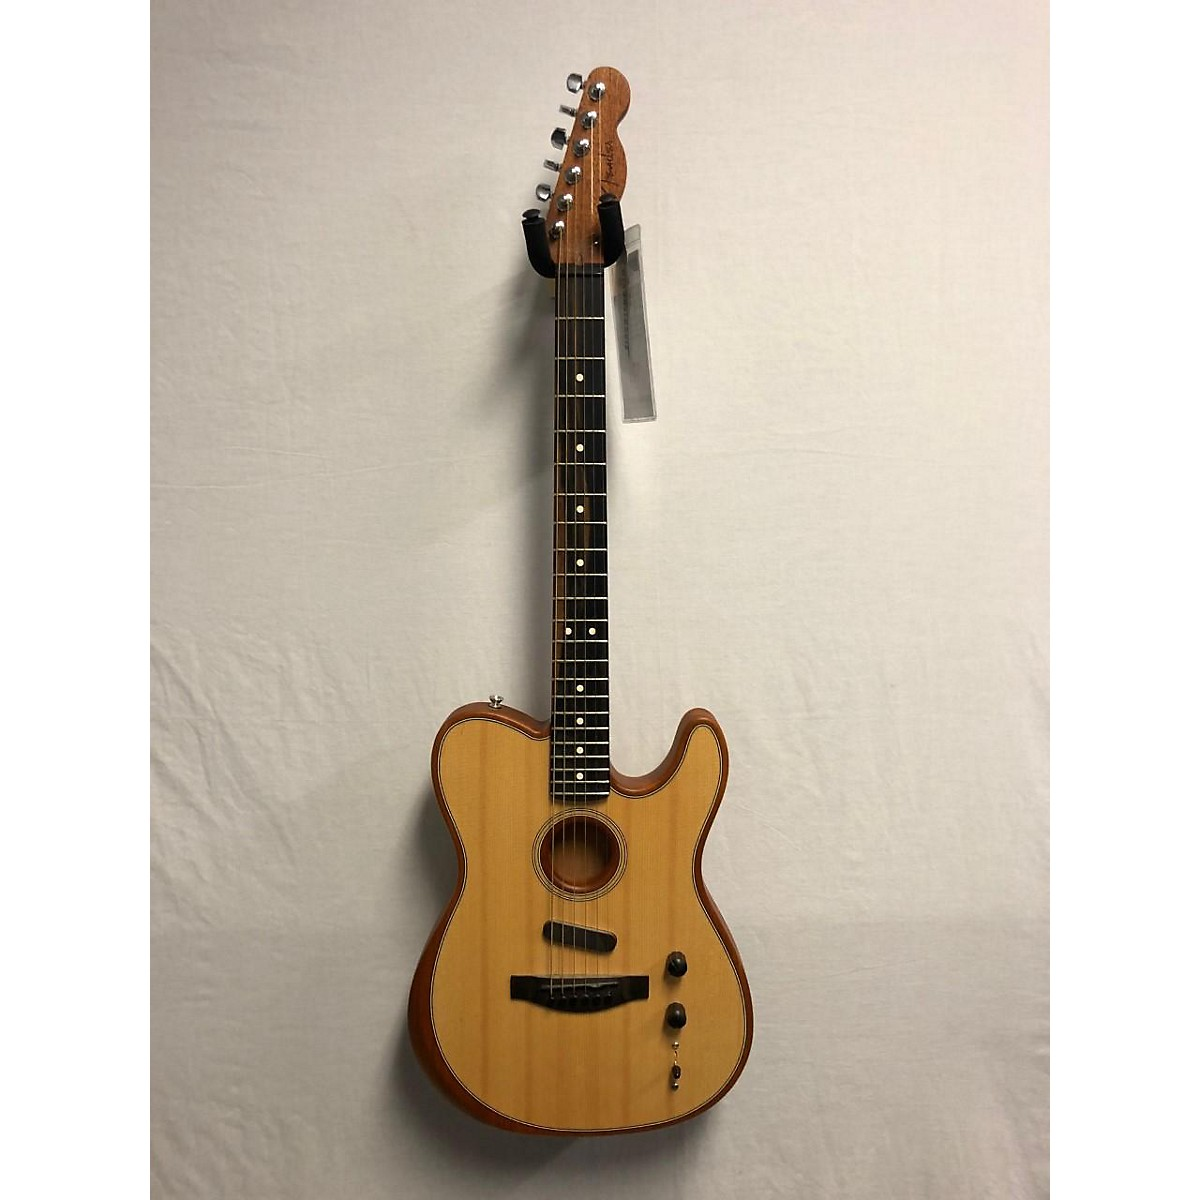 Fender American Acoustasonic Telecaster Acoustic Electric Guitar